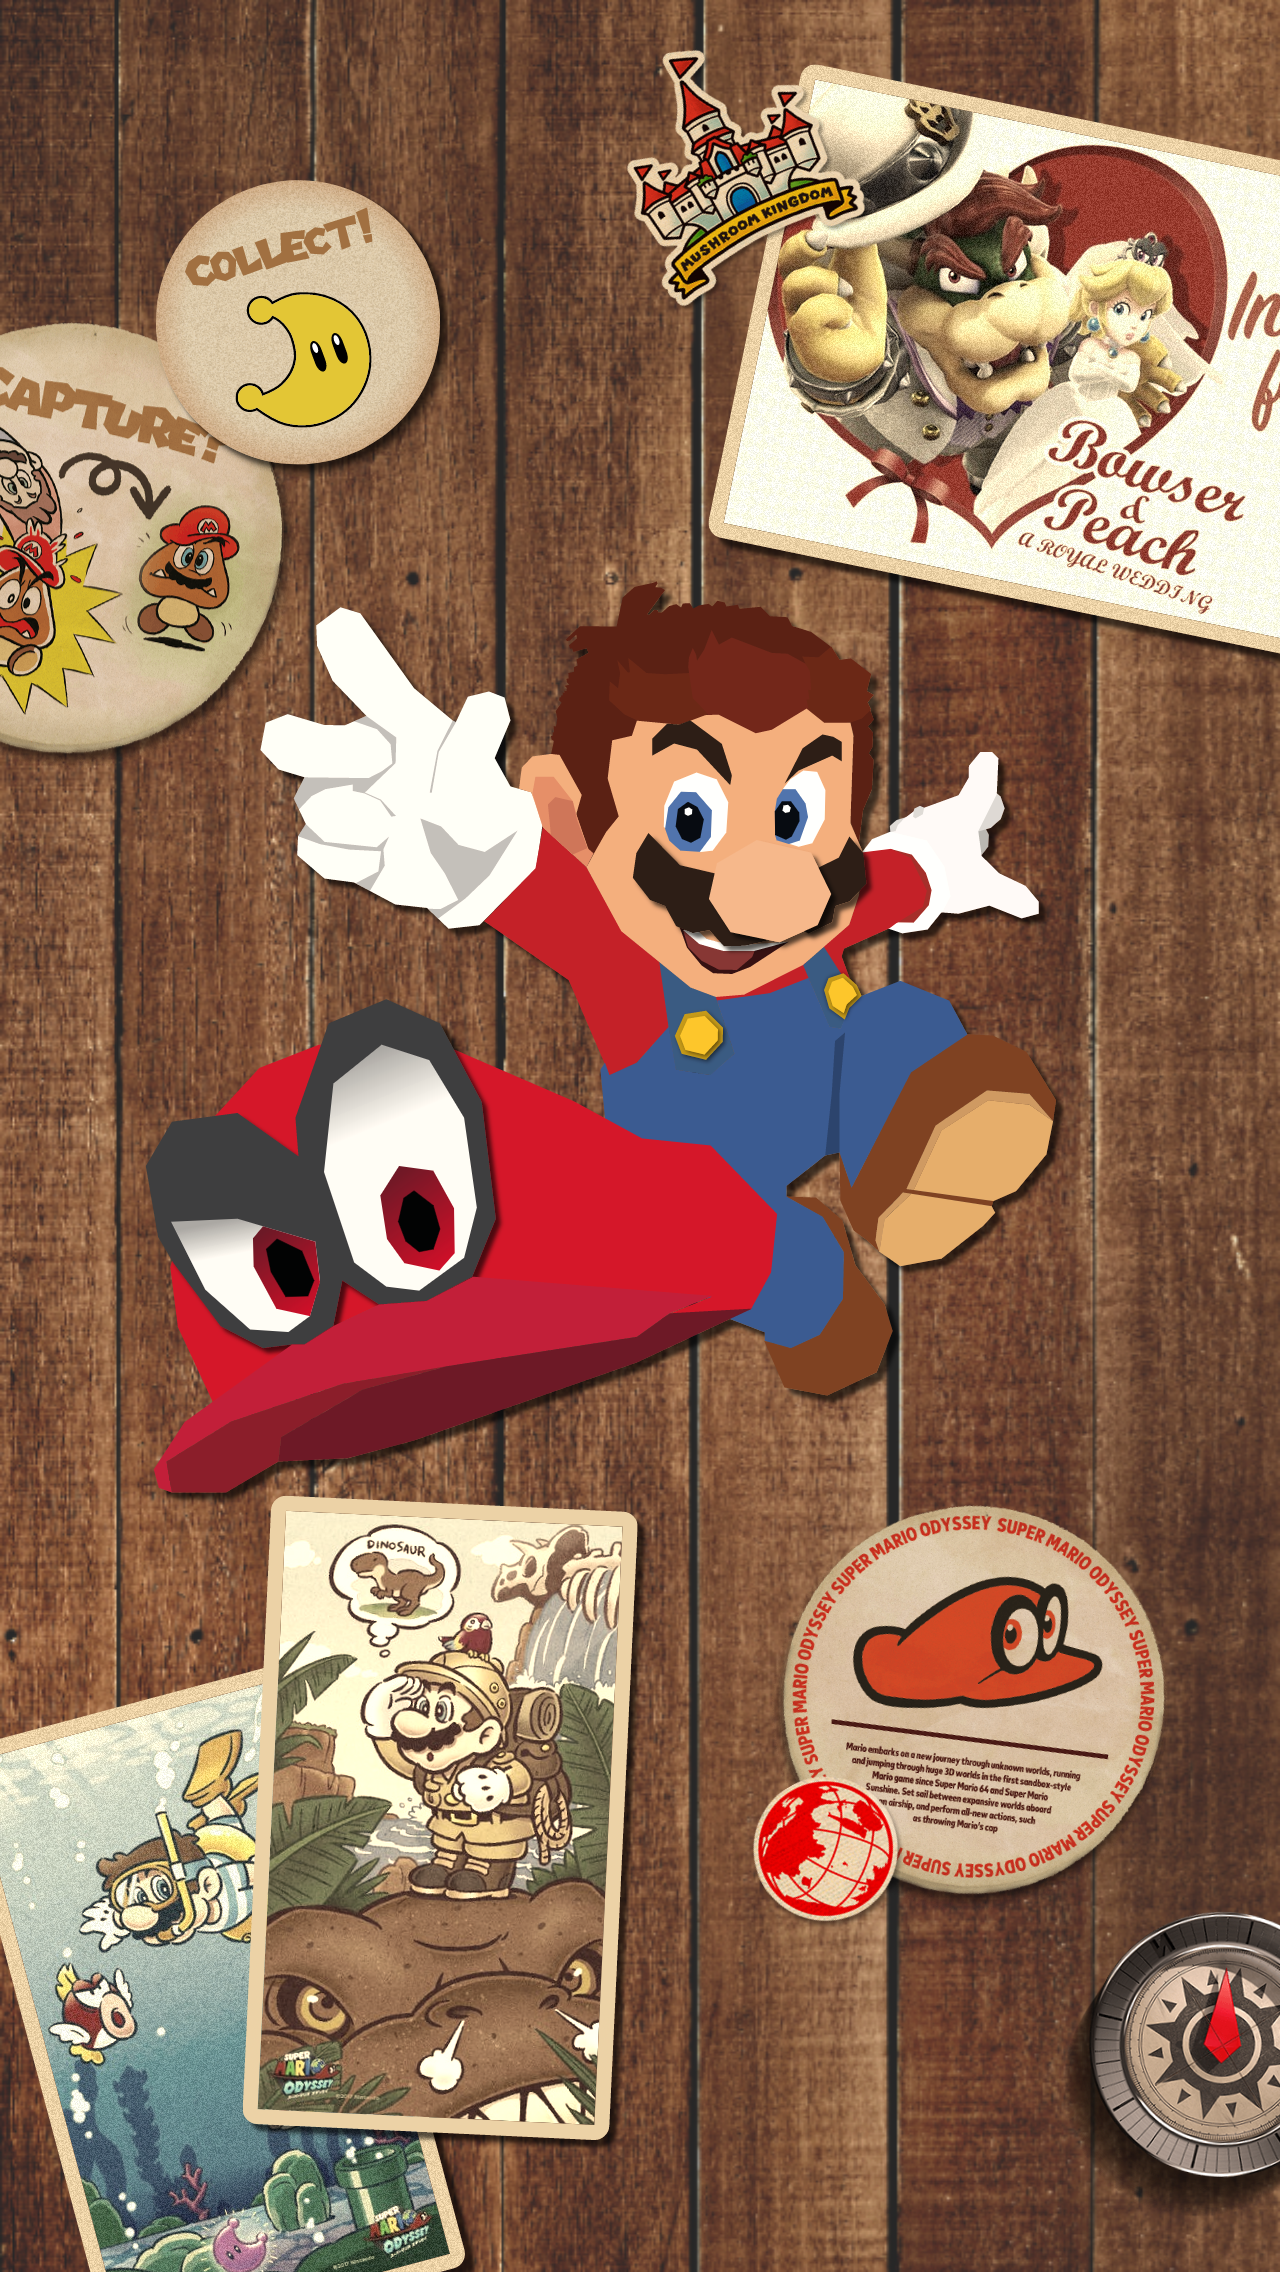 I made a Super Mario Odyssey wallpaper with the style from